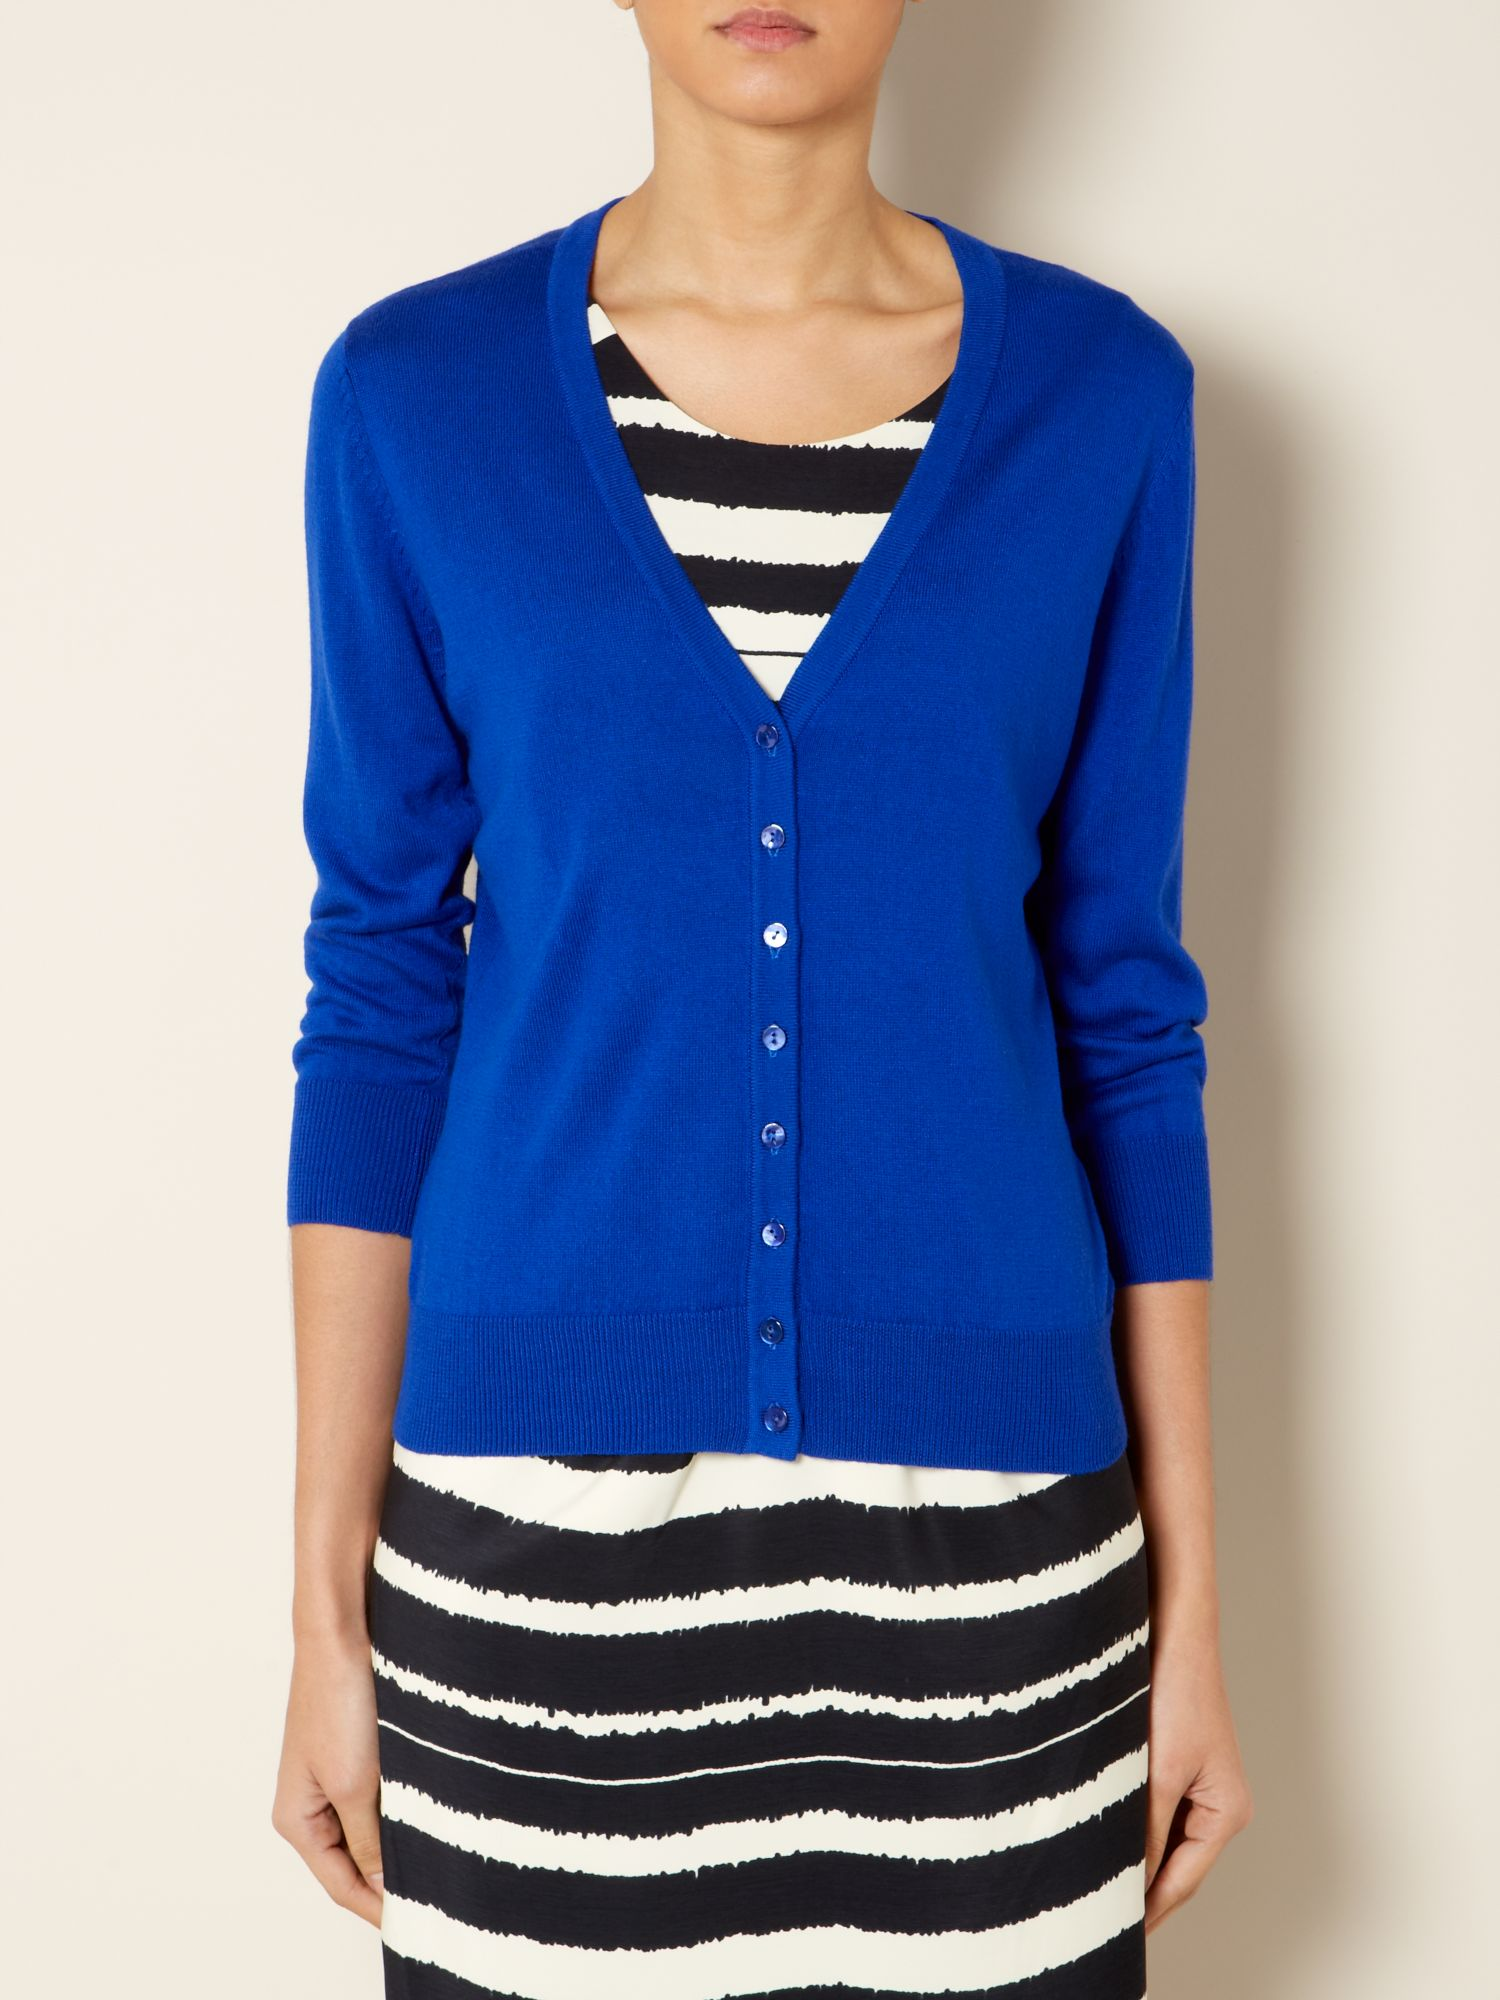 Knit cardigan 3/4 sleeve v-neck